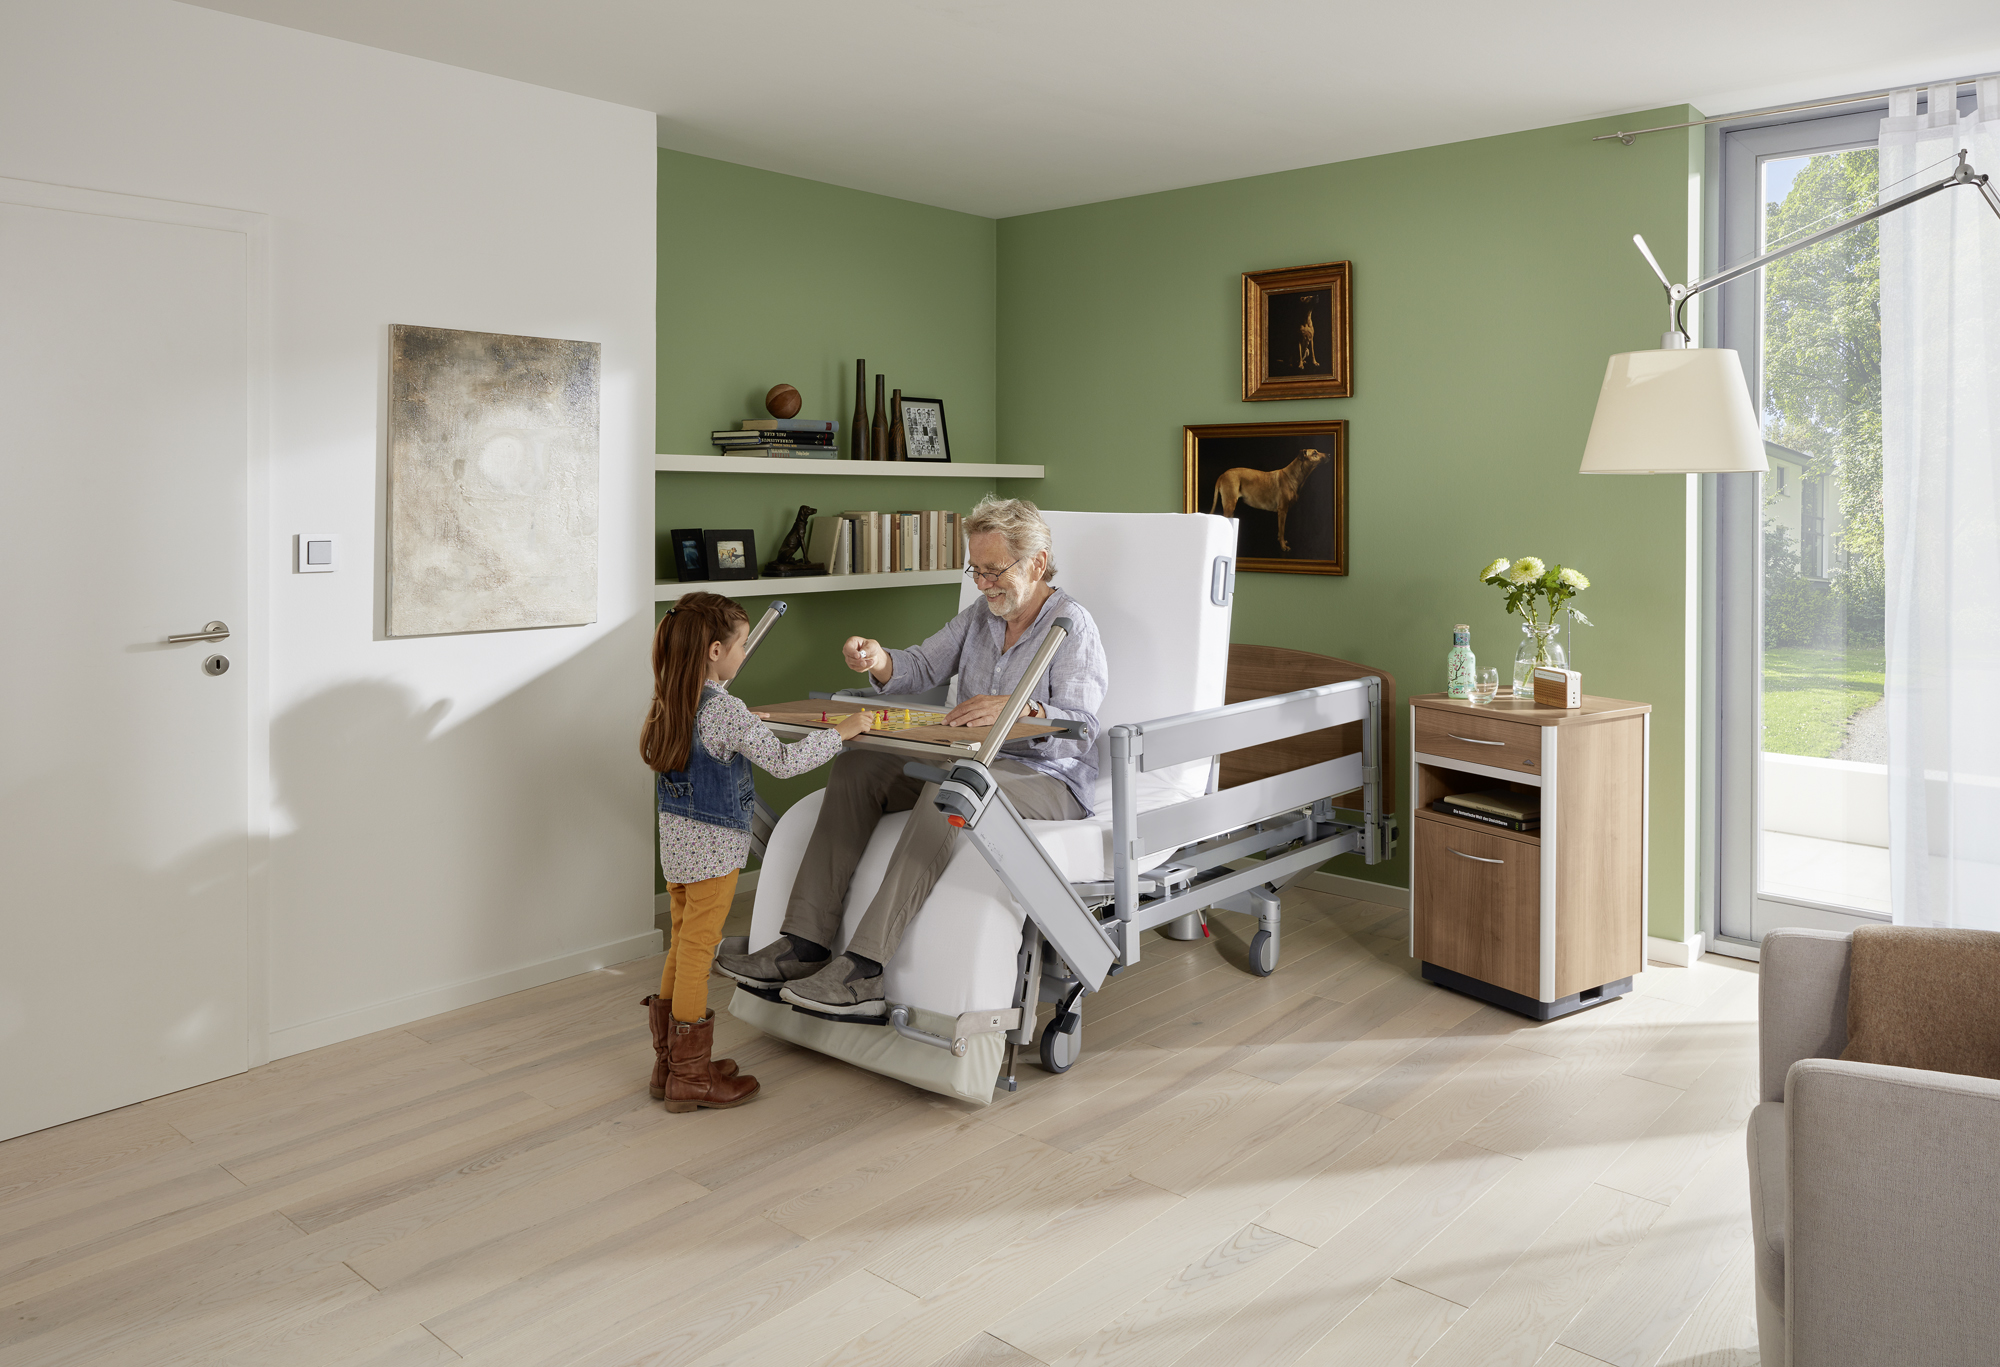 Living independently each day in the Vertica care mobilisation bed